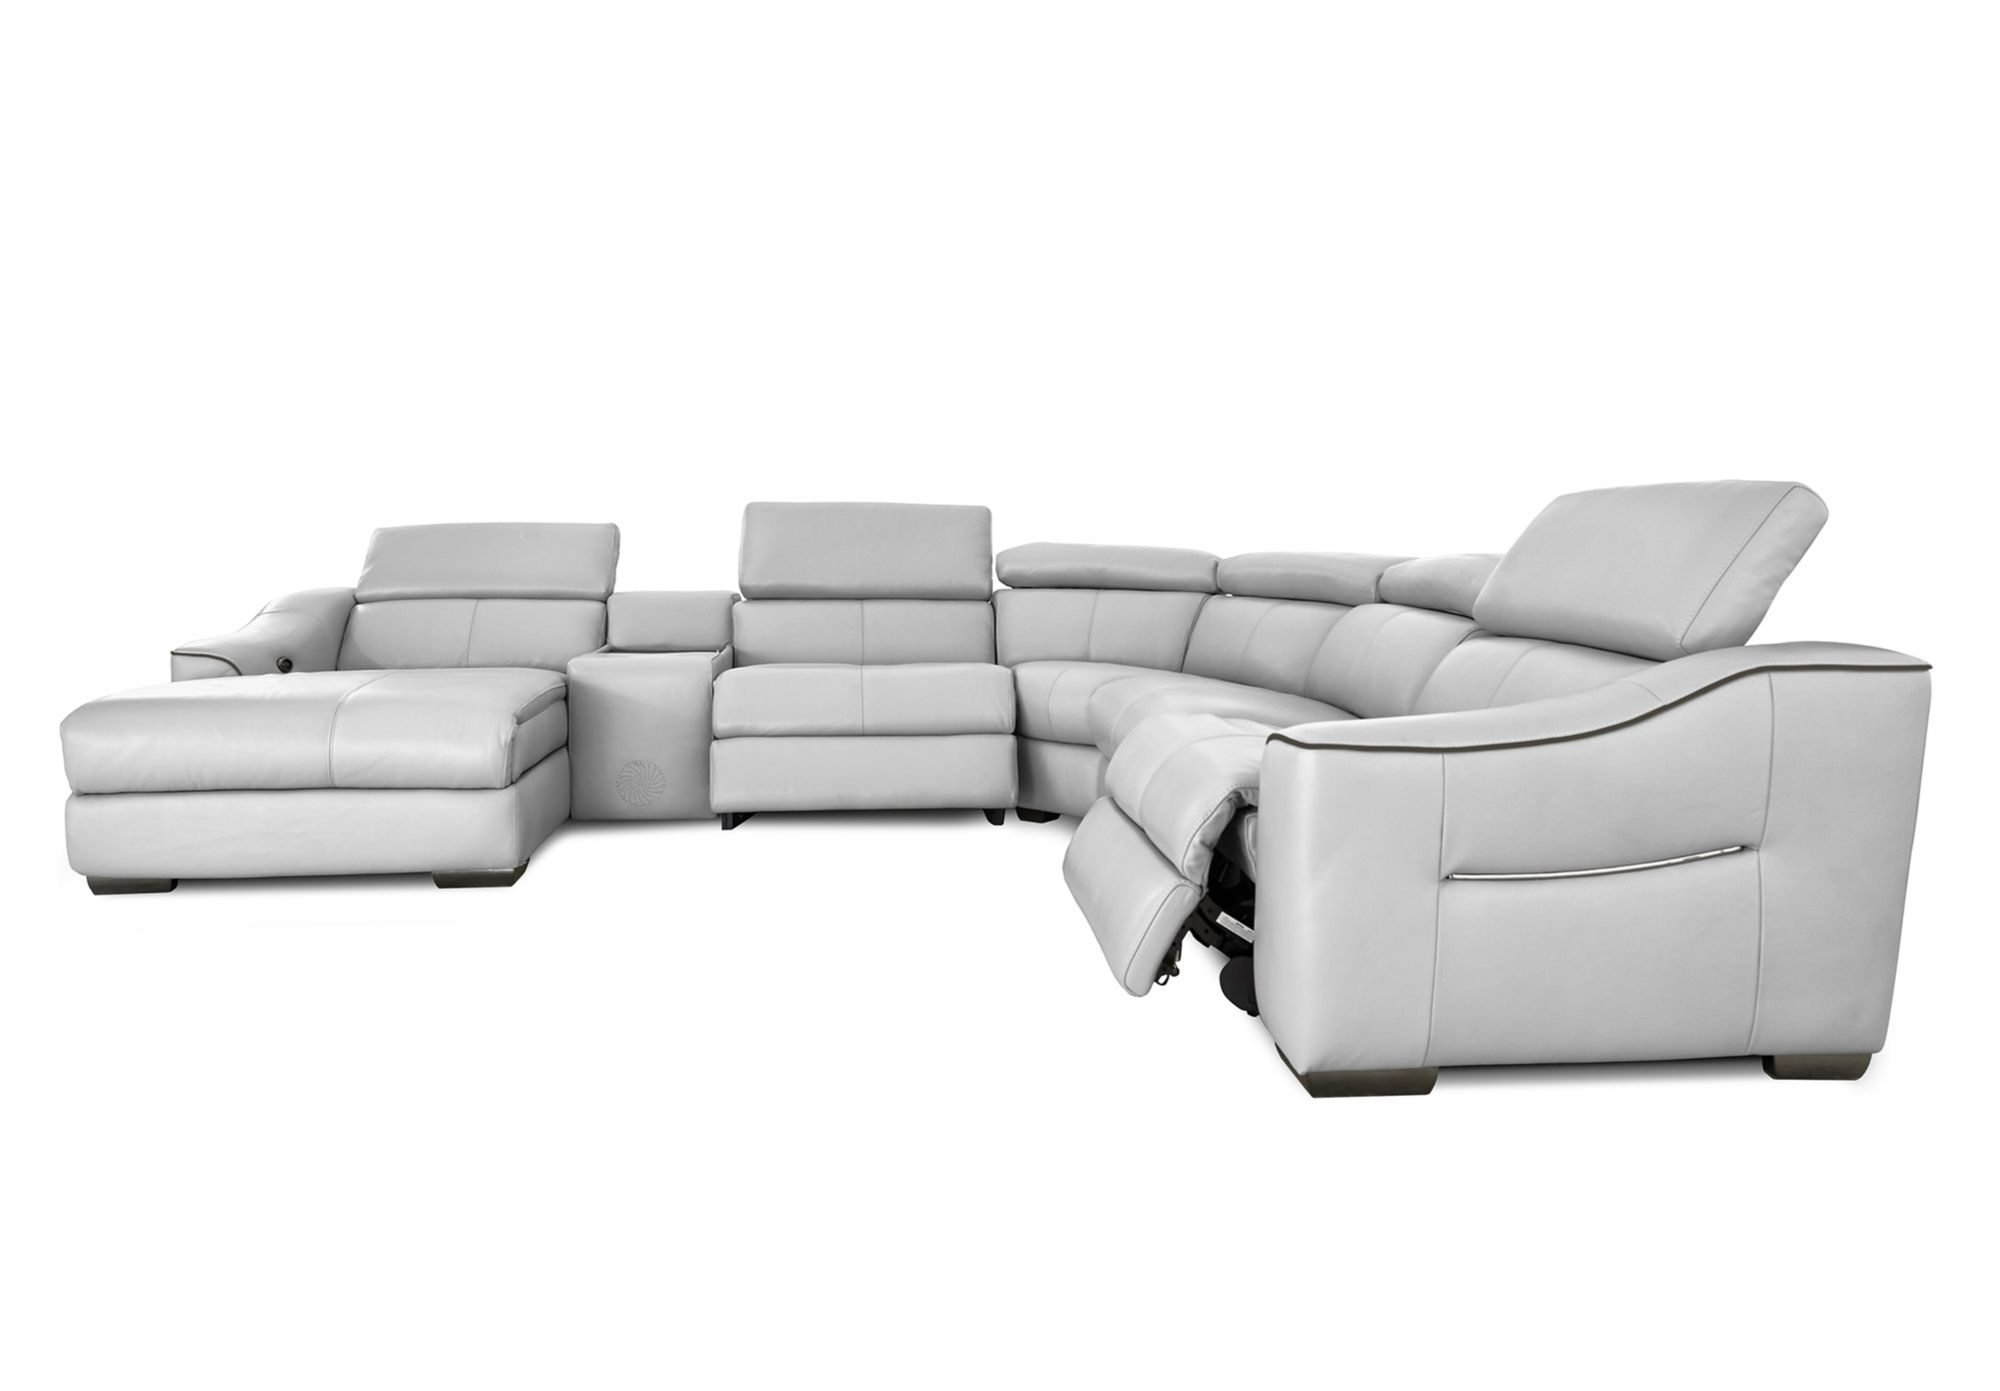 Chaise Sofa Chairs Throughout Fashionable Rhf Corner Chaise Sofa – Elixir – Gorgeous Living Room Furniture (Gallery 8 of 20)